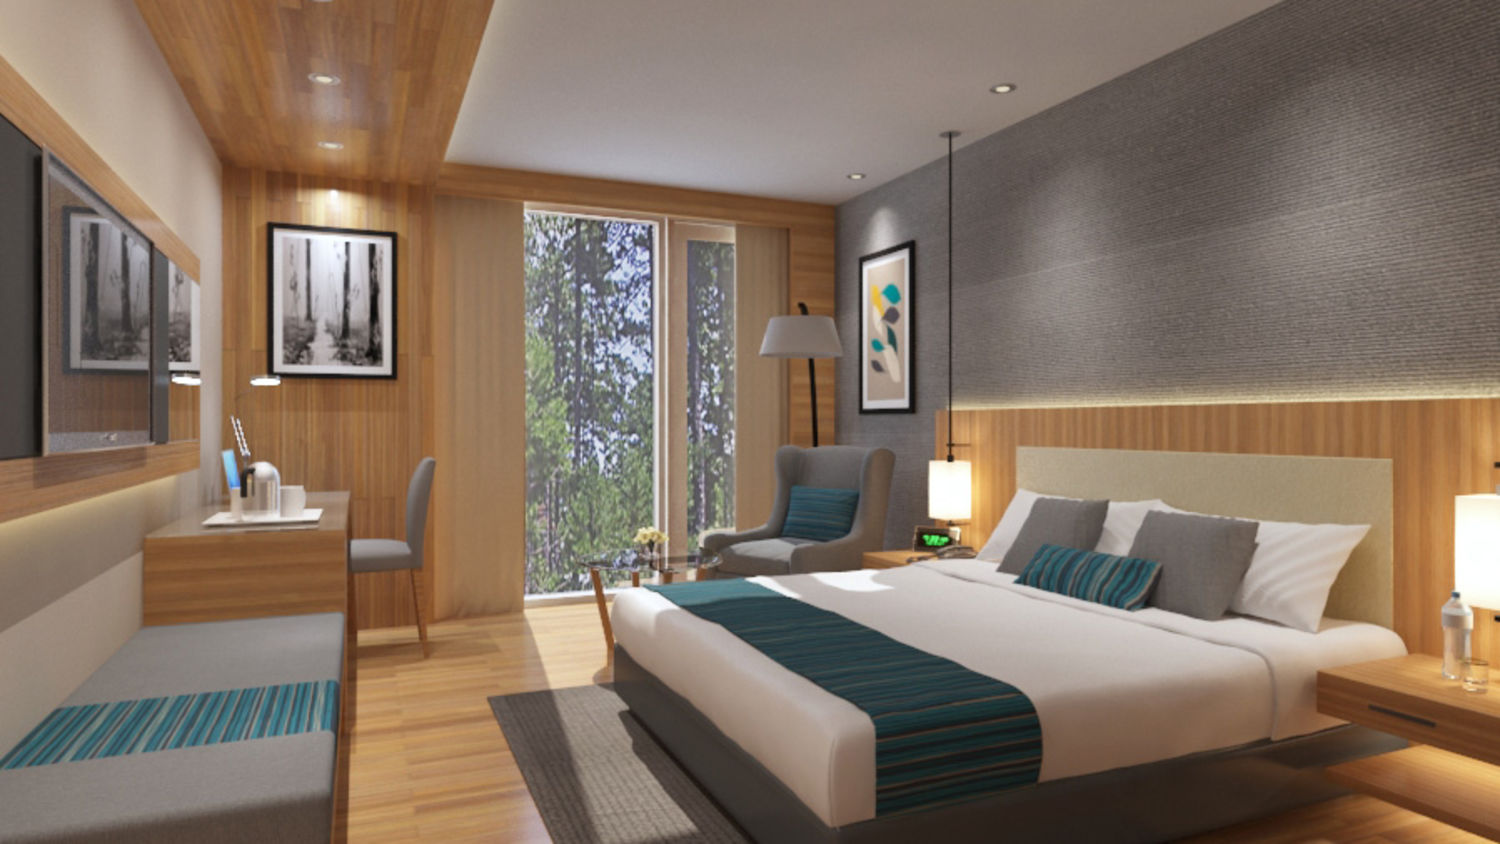 Luxury Rooms in Bhimtal, Stay in Bhimtal, Rosefinch Sarovar Portico, Bhimtal-1